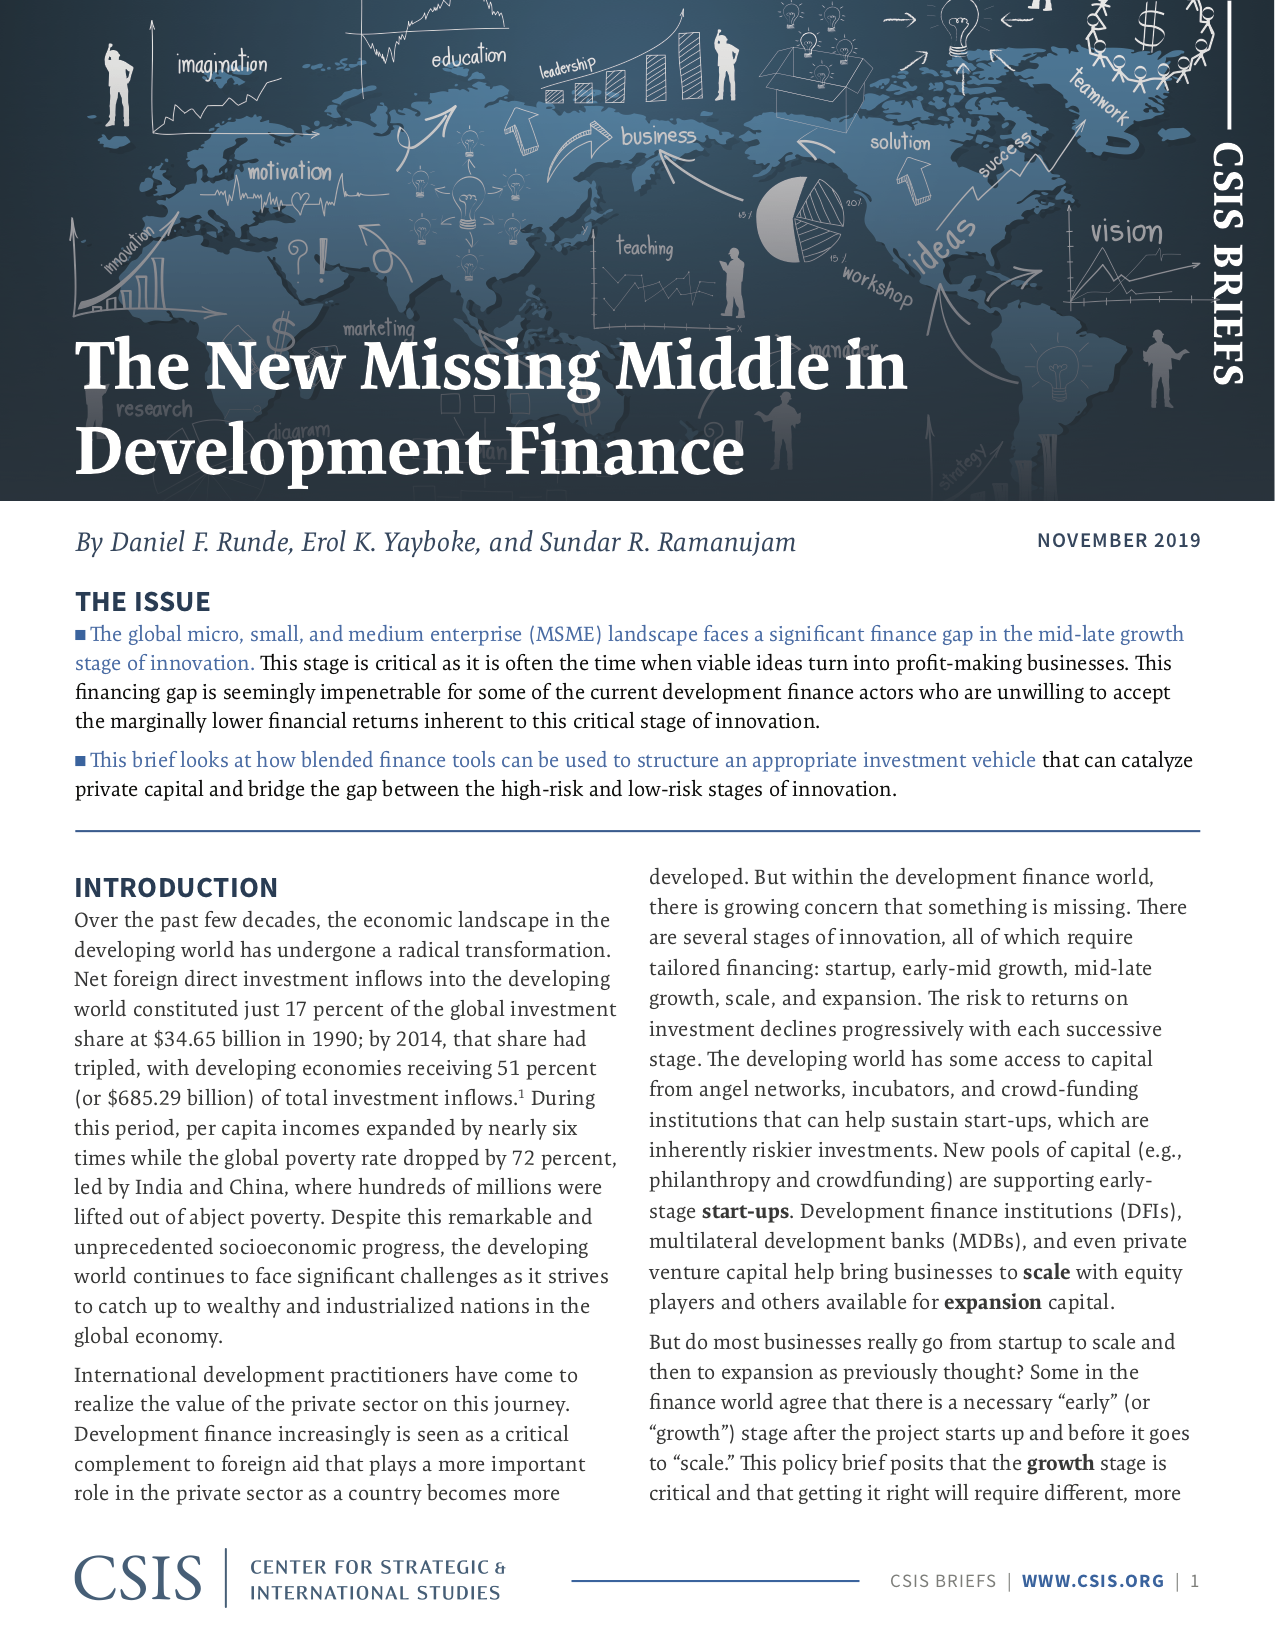 The New Missing Middle in Development Finance